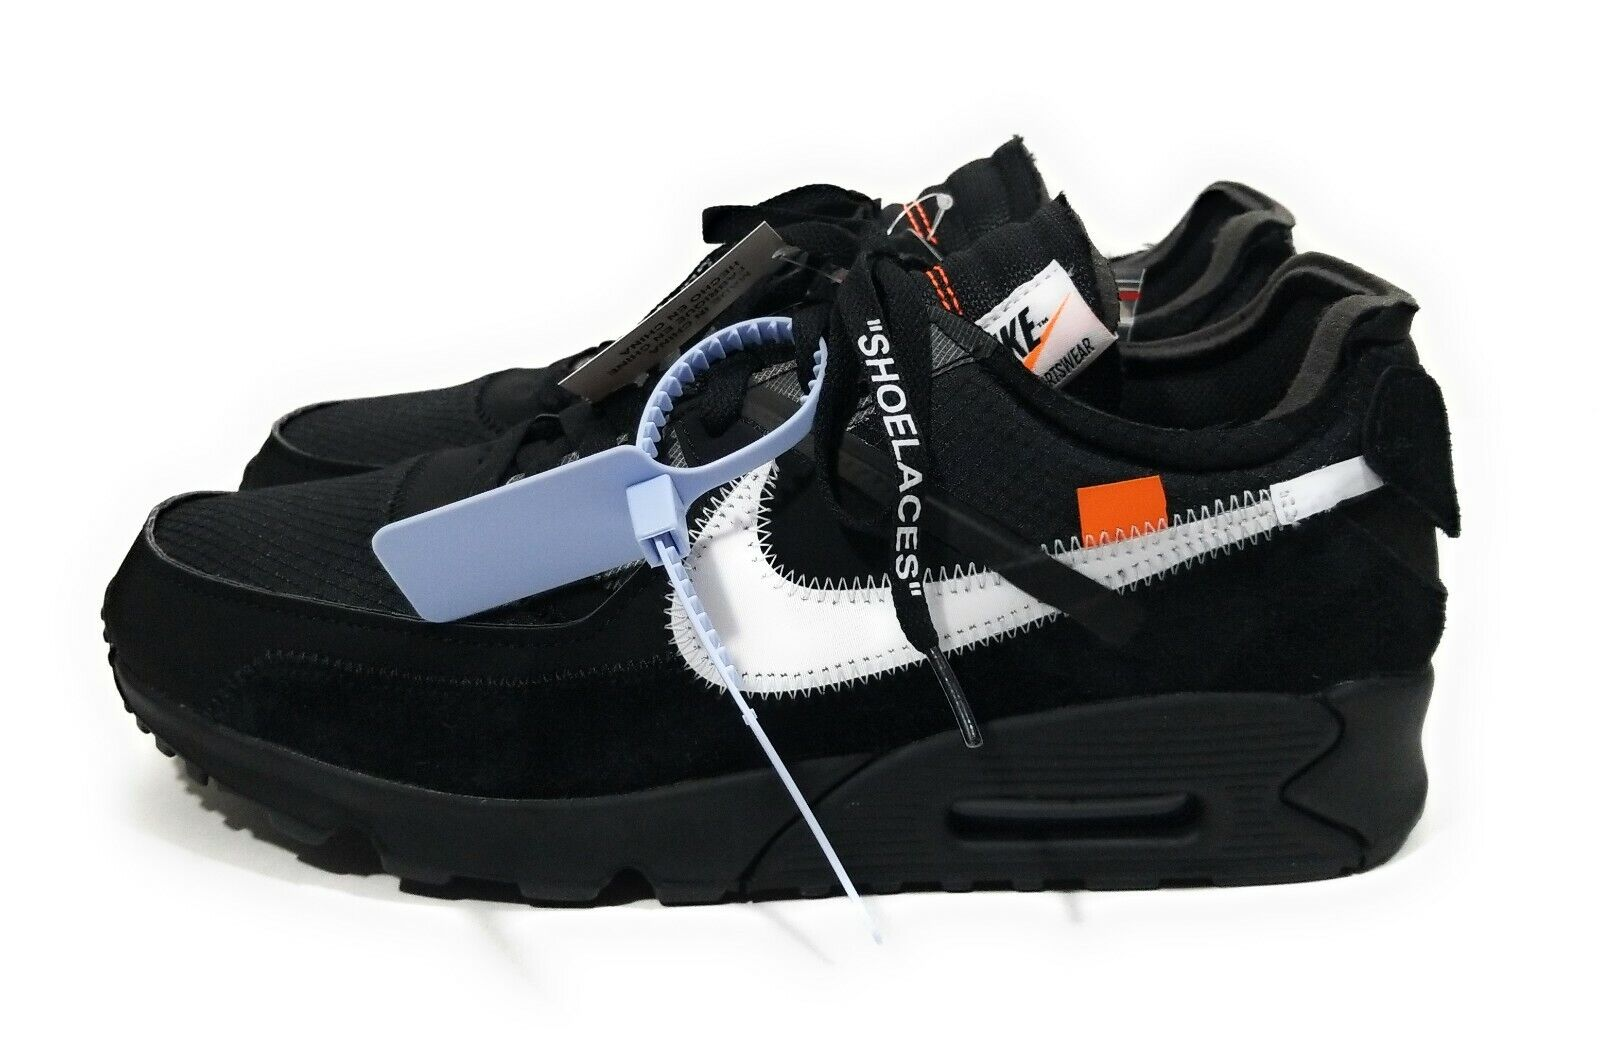 Off White Nike Air Max 90 Mens Running shoes Black White Size 11